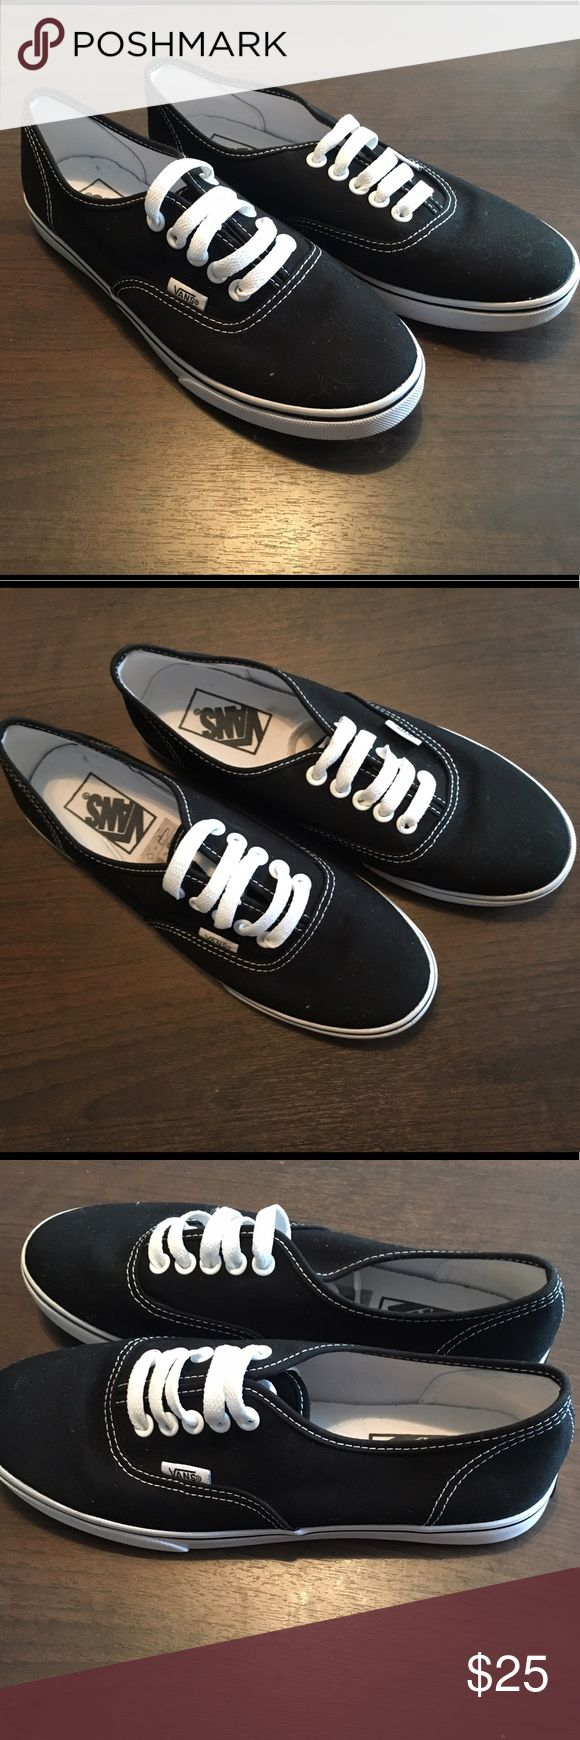 Vans Authentic Lo Pro Skate Shoe Size 7 Worn only like 2 times. Purchased from Journeys. Authentic Vans, women's size 7. You can't see the full laces in the photos but they're tucked into the shoe - not slip ons. Plain black with white laces/stitching/detailing. Vans Shoes Sneakers